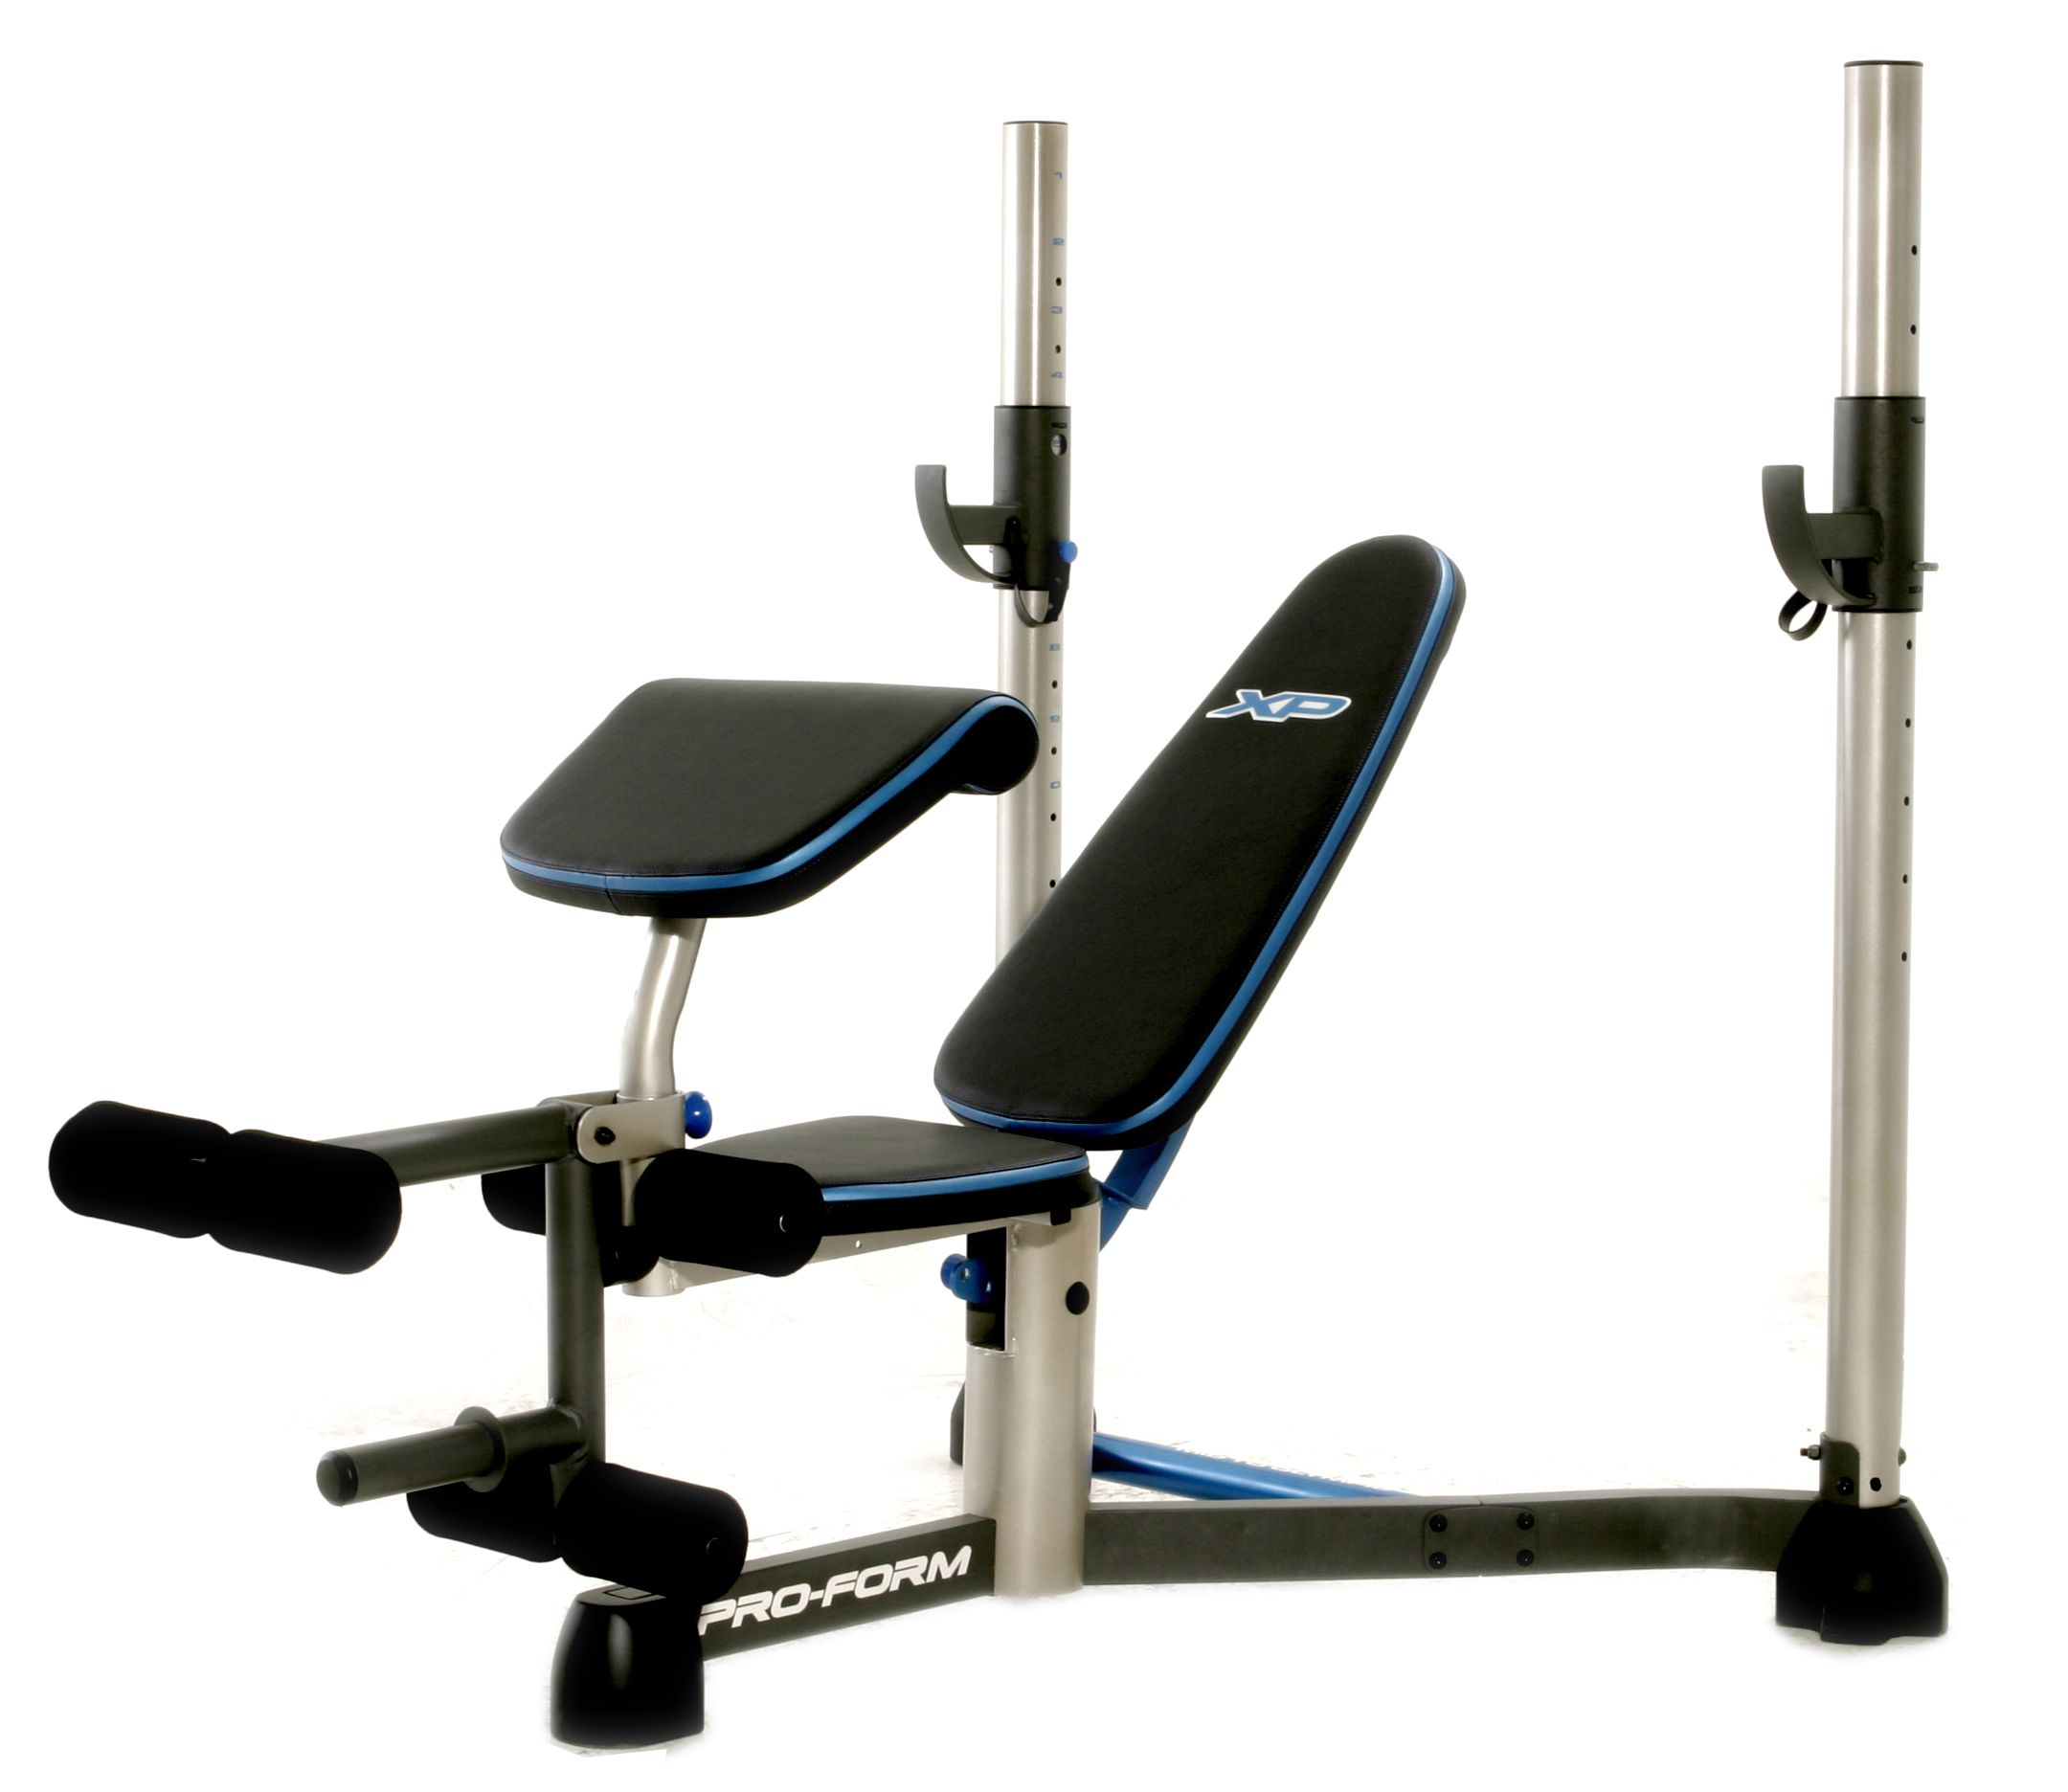 Proform Xp 160 Weight Bench Fitness Amp Sports Fitness